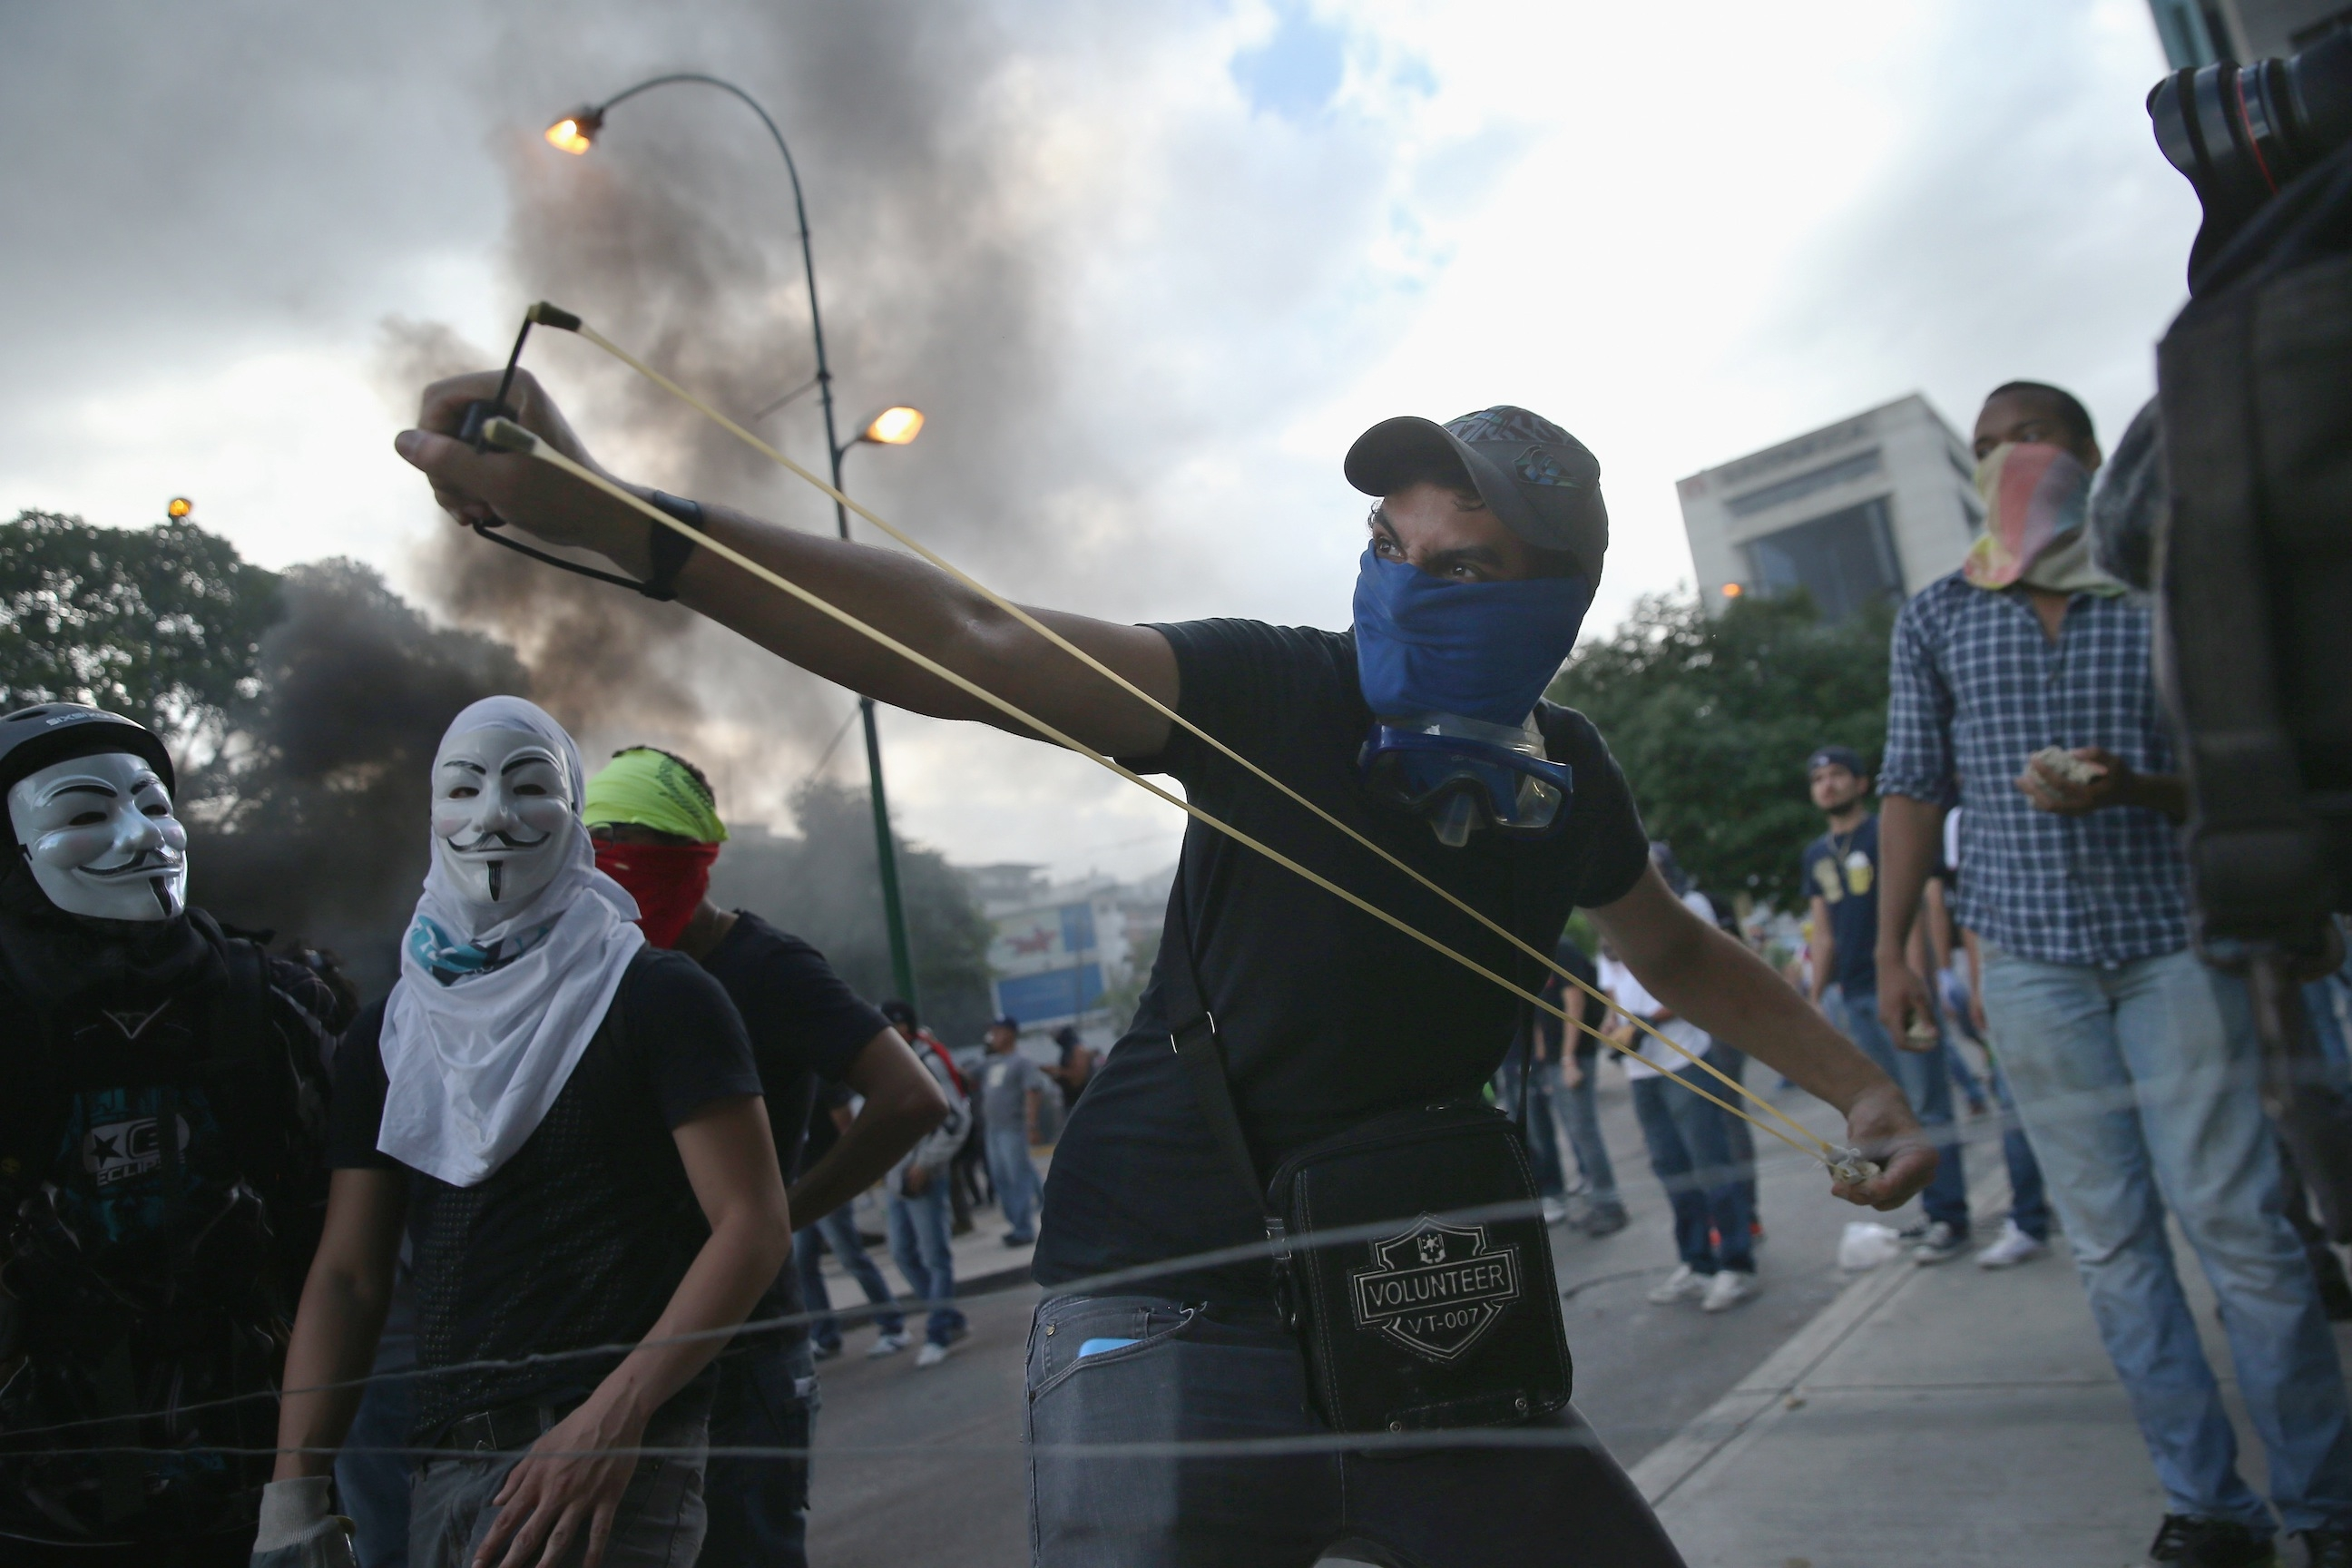 caracas single guys Check out the latest tweets from caracas chronicles (@caracaschron) skip to content home home home, current page it should give us some hope, guys.